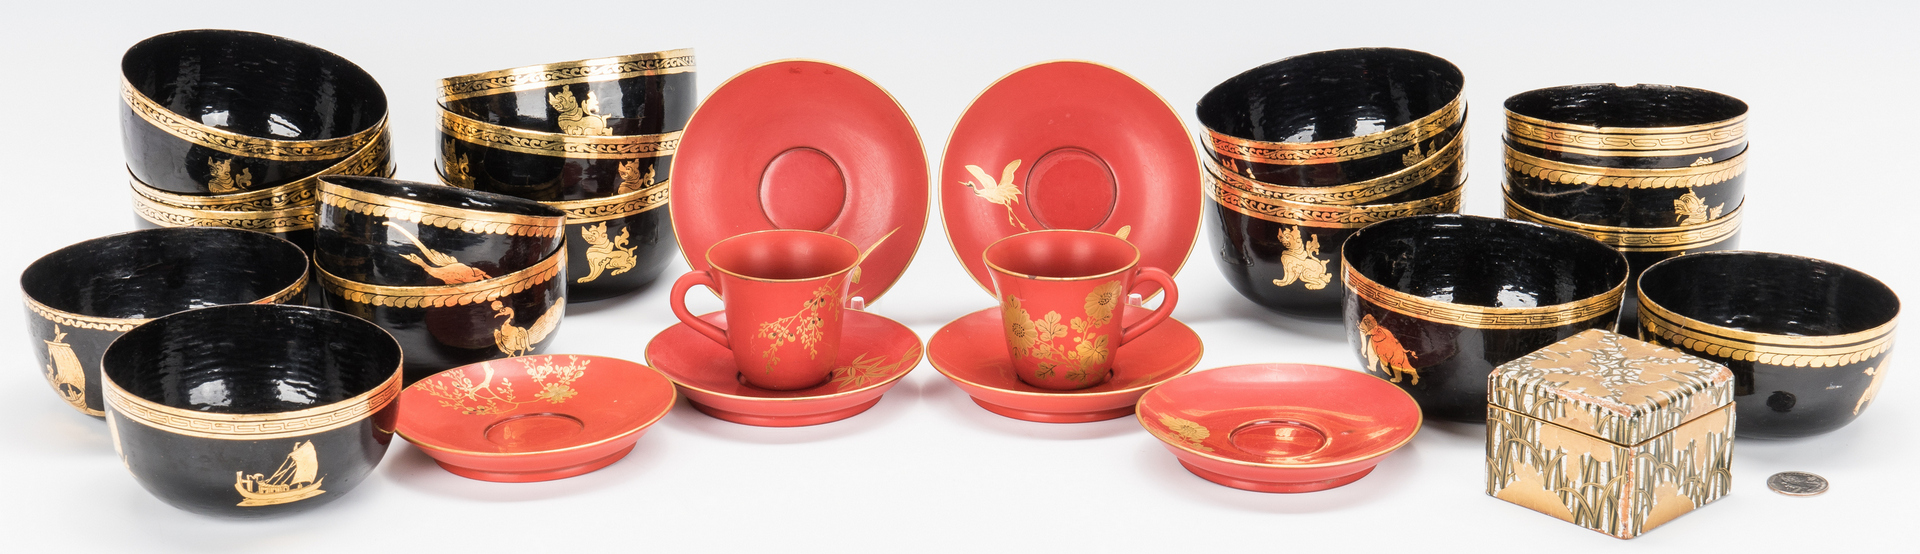 Lot 1002: 27 Assorted Asian Lacquerware Items